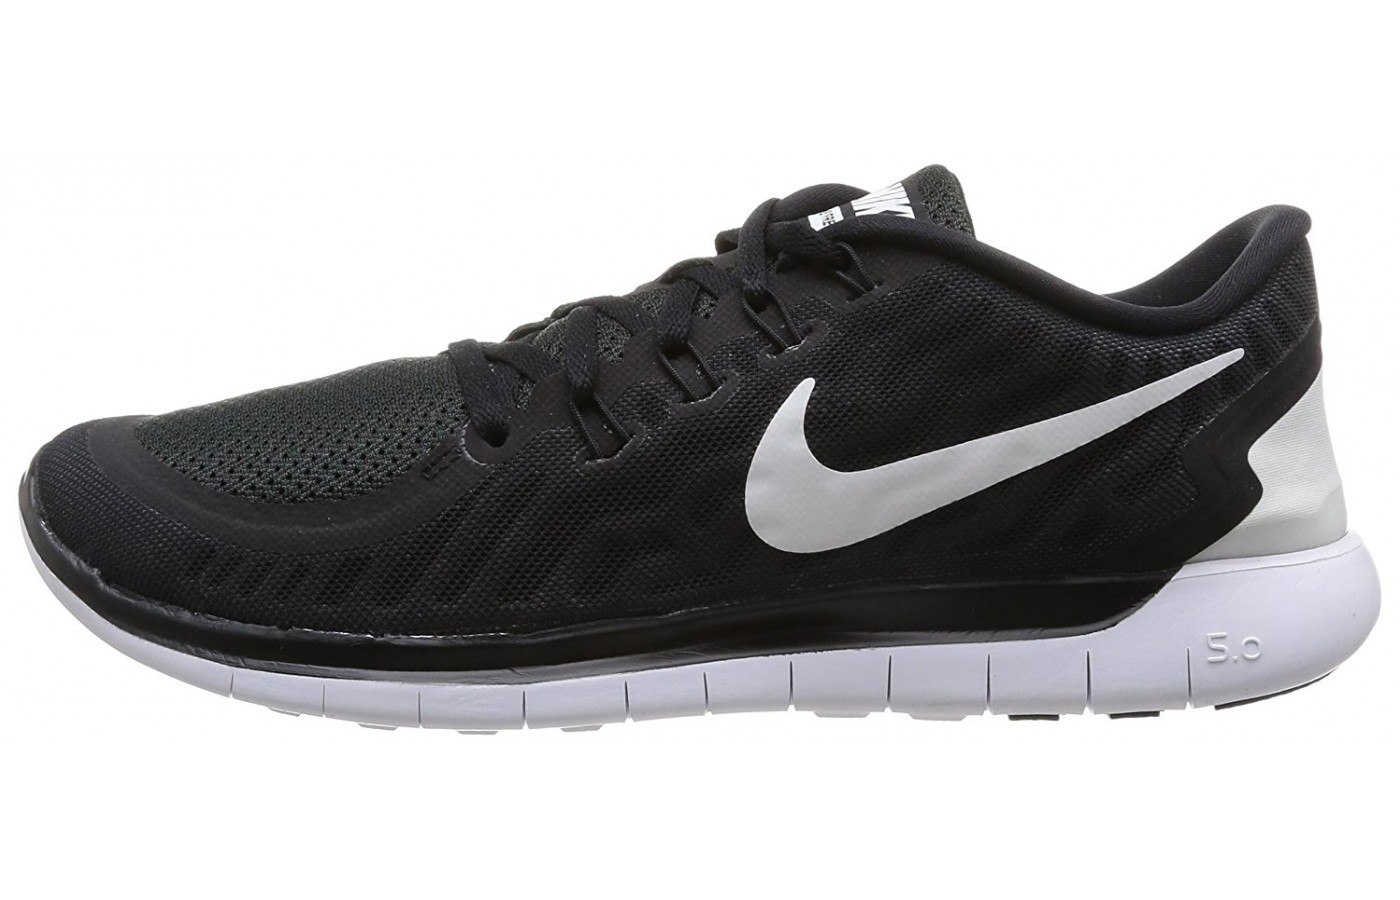 left to right view of the Nike Free 5.0